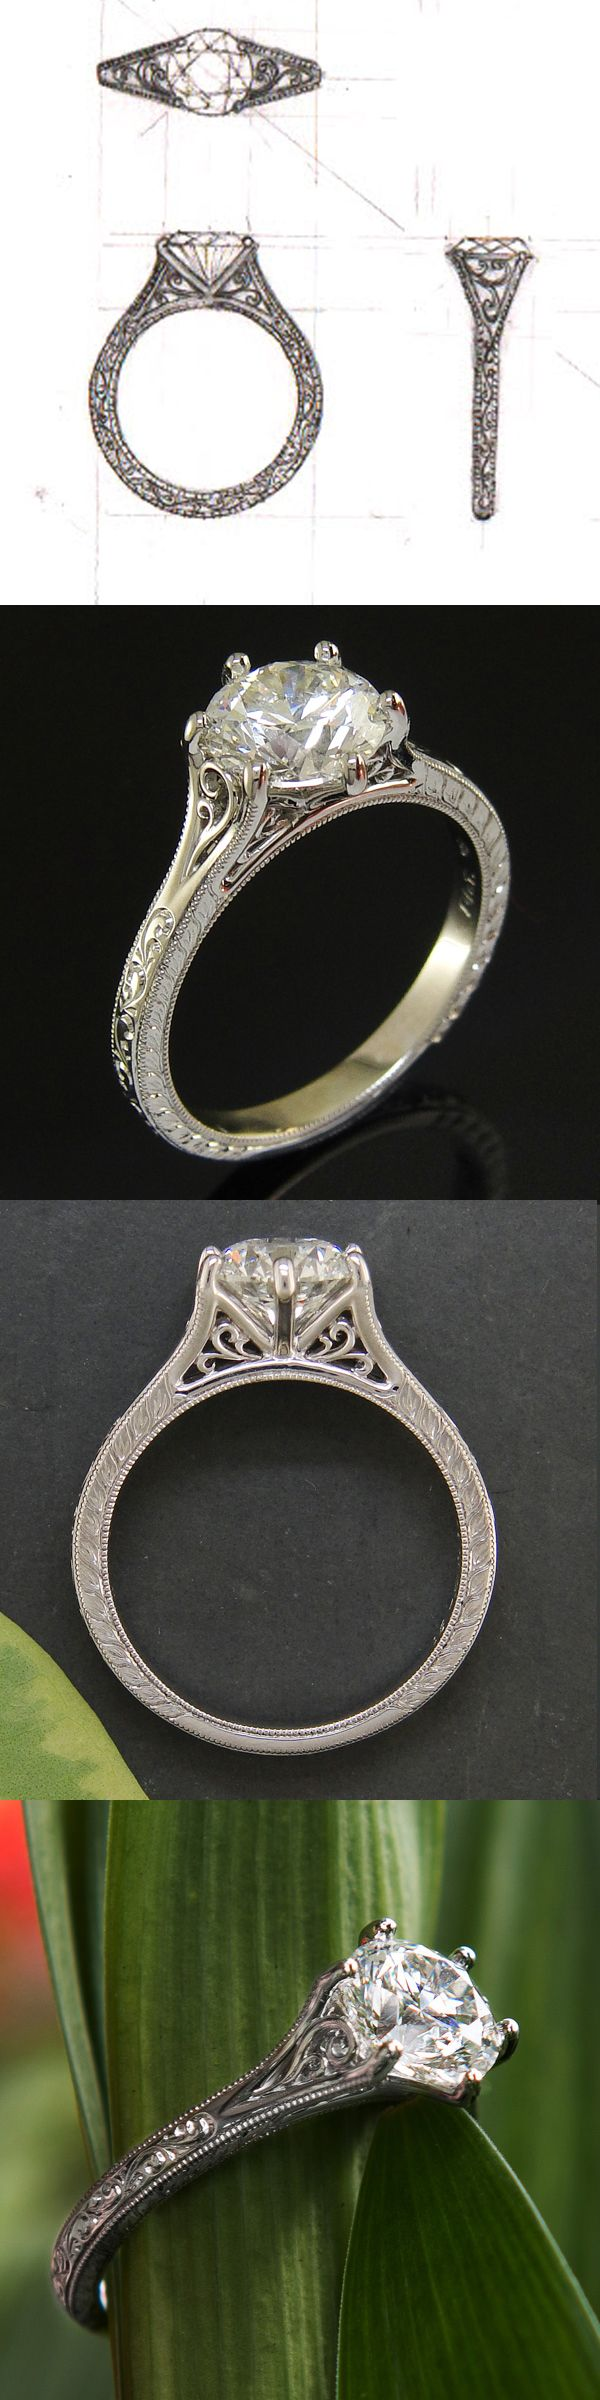 french best ring kayykayyohhh and home pave on images pinterest at style engagement commitment rings promise